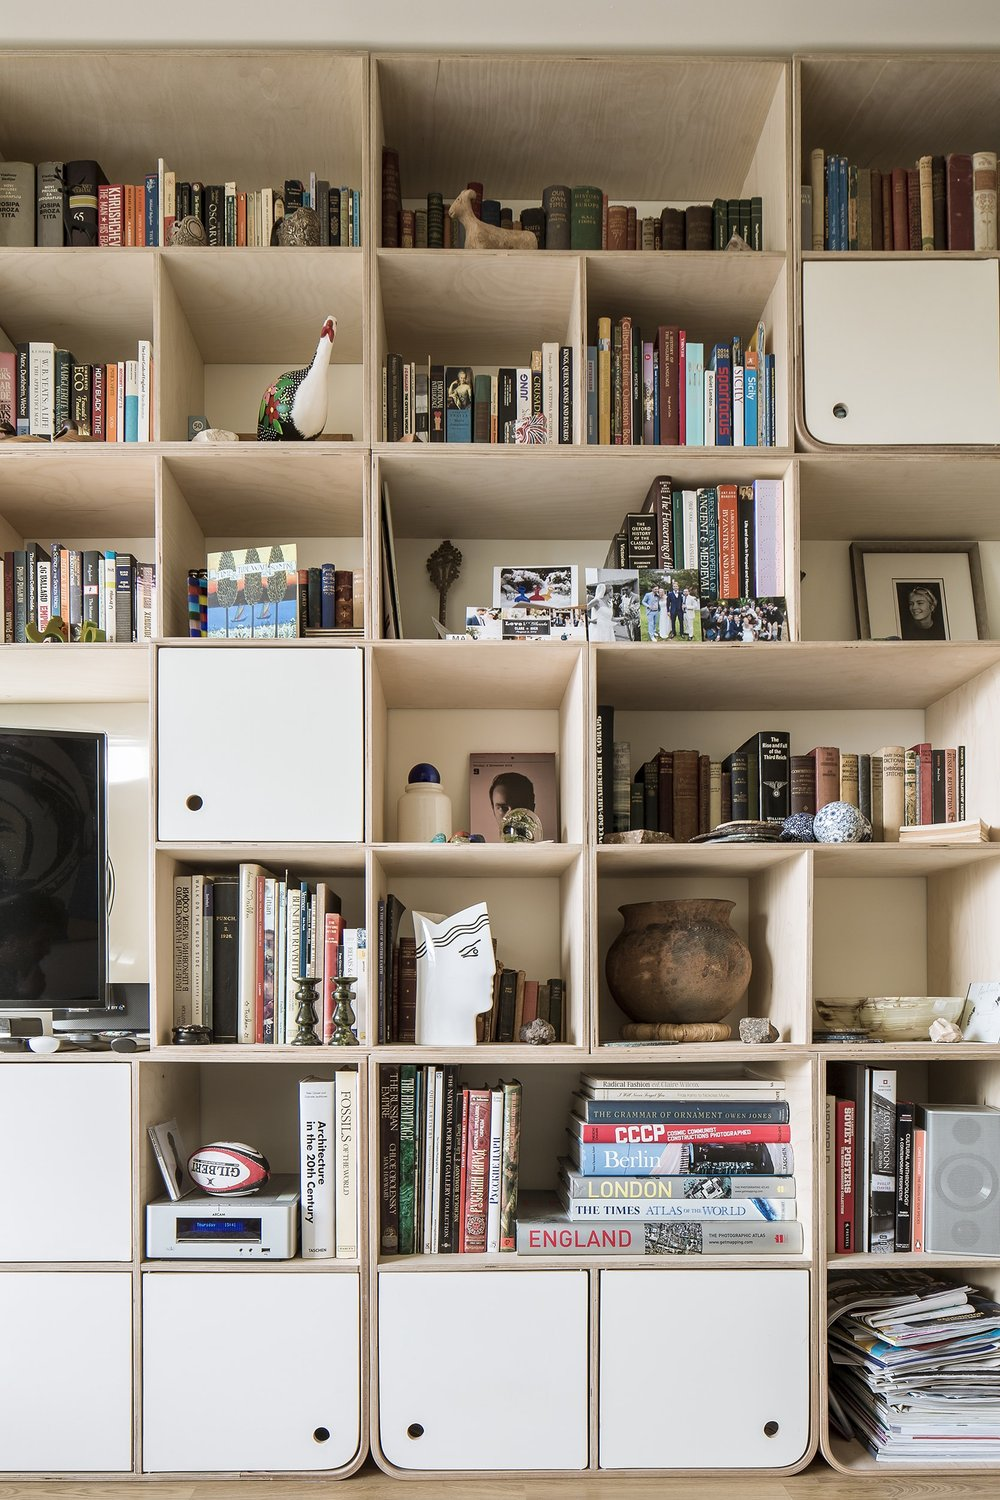 The varying sizes of the alcoves give the bookshelf a rhythm, creating an interesting and irregular shape.